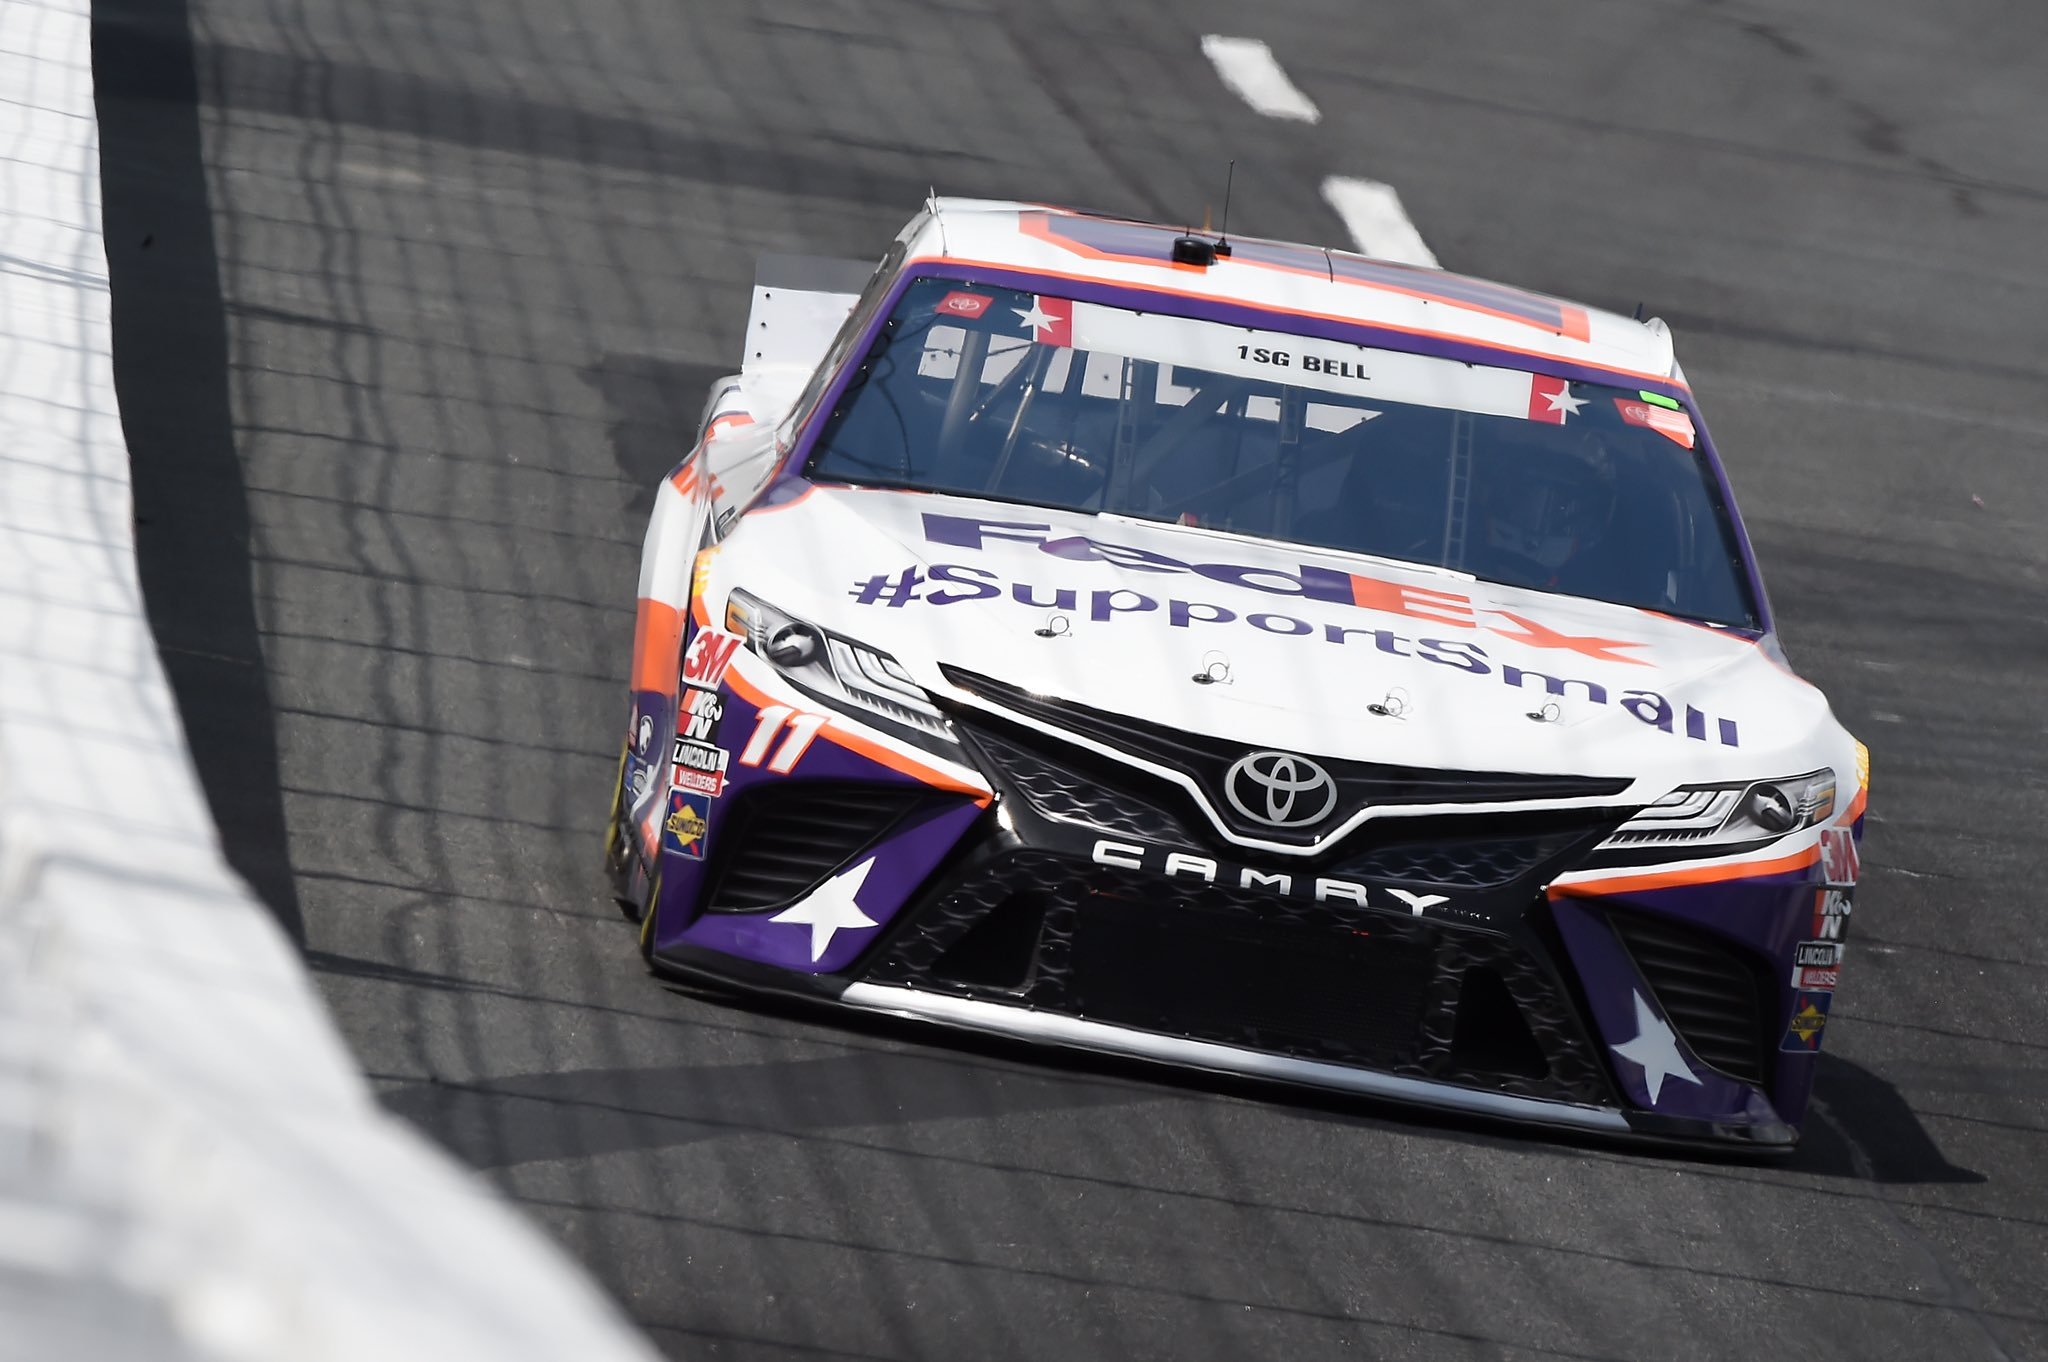 Charlotte Penalty Report: May 24, 2020 (NASCAR Cup Series) - Racing News